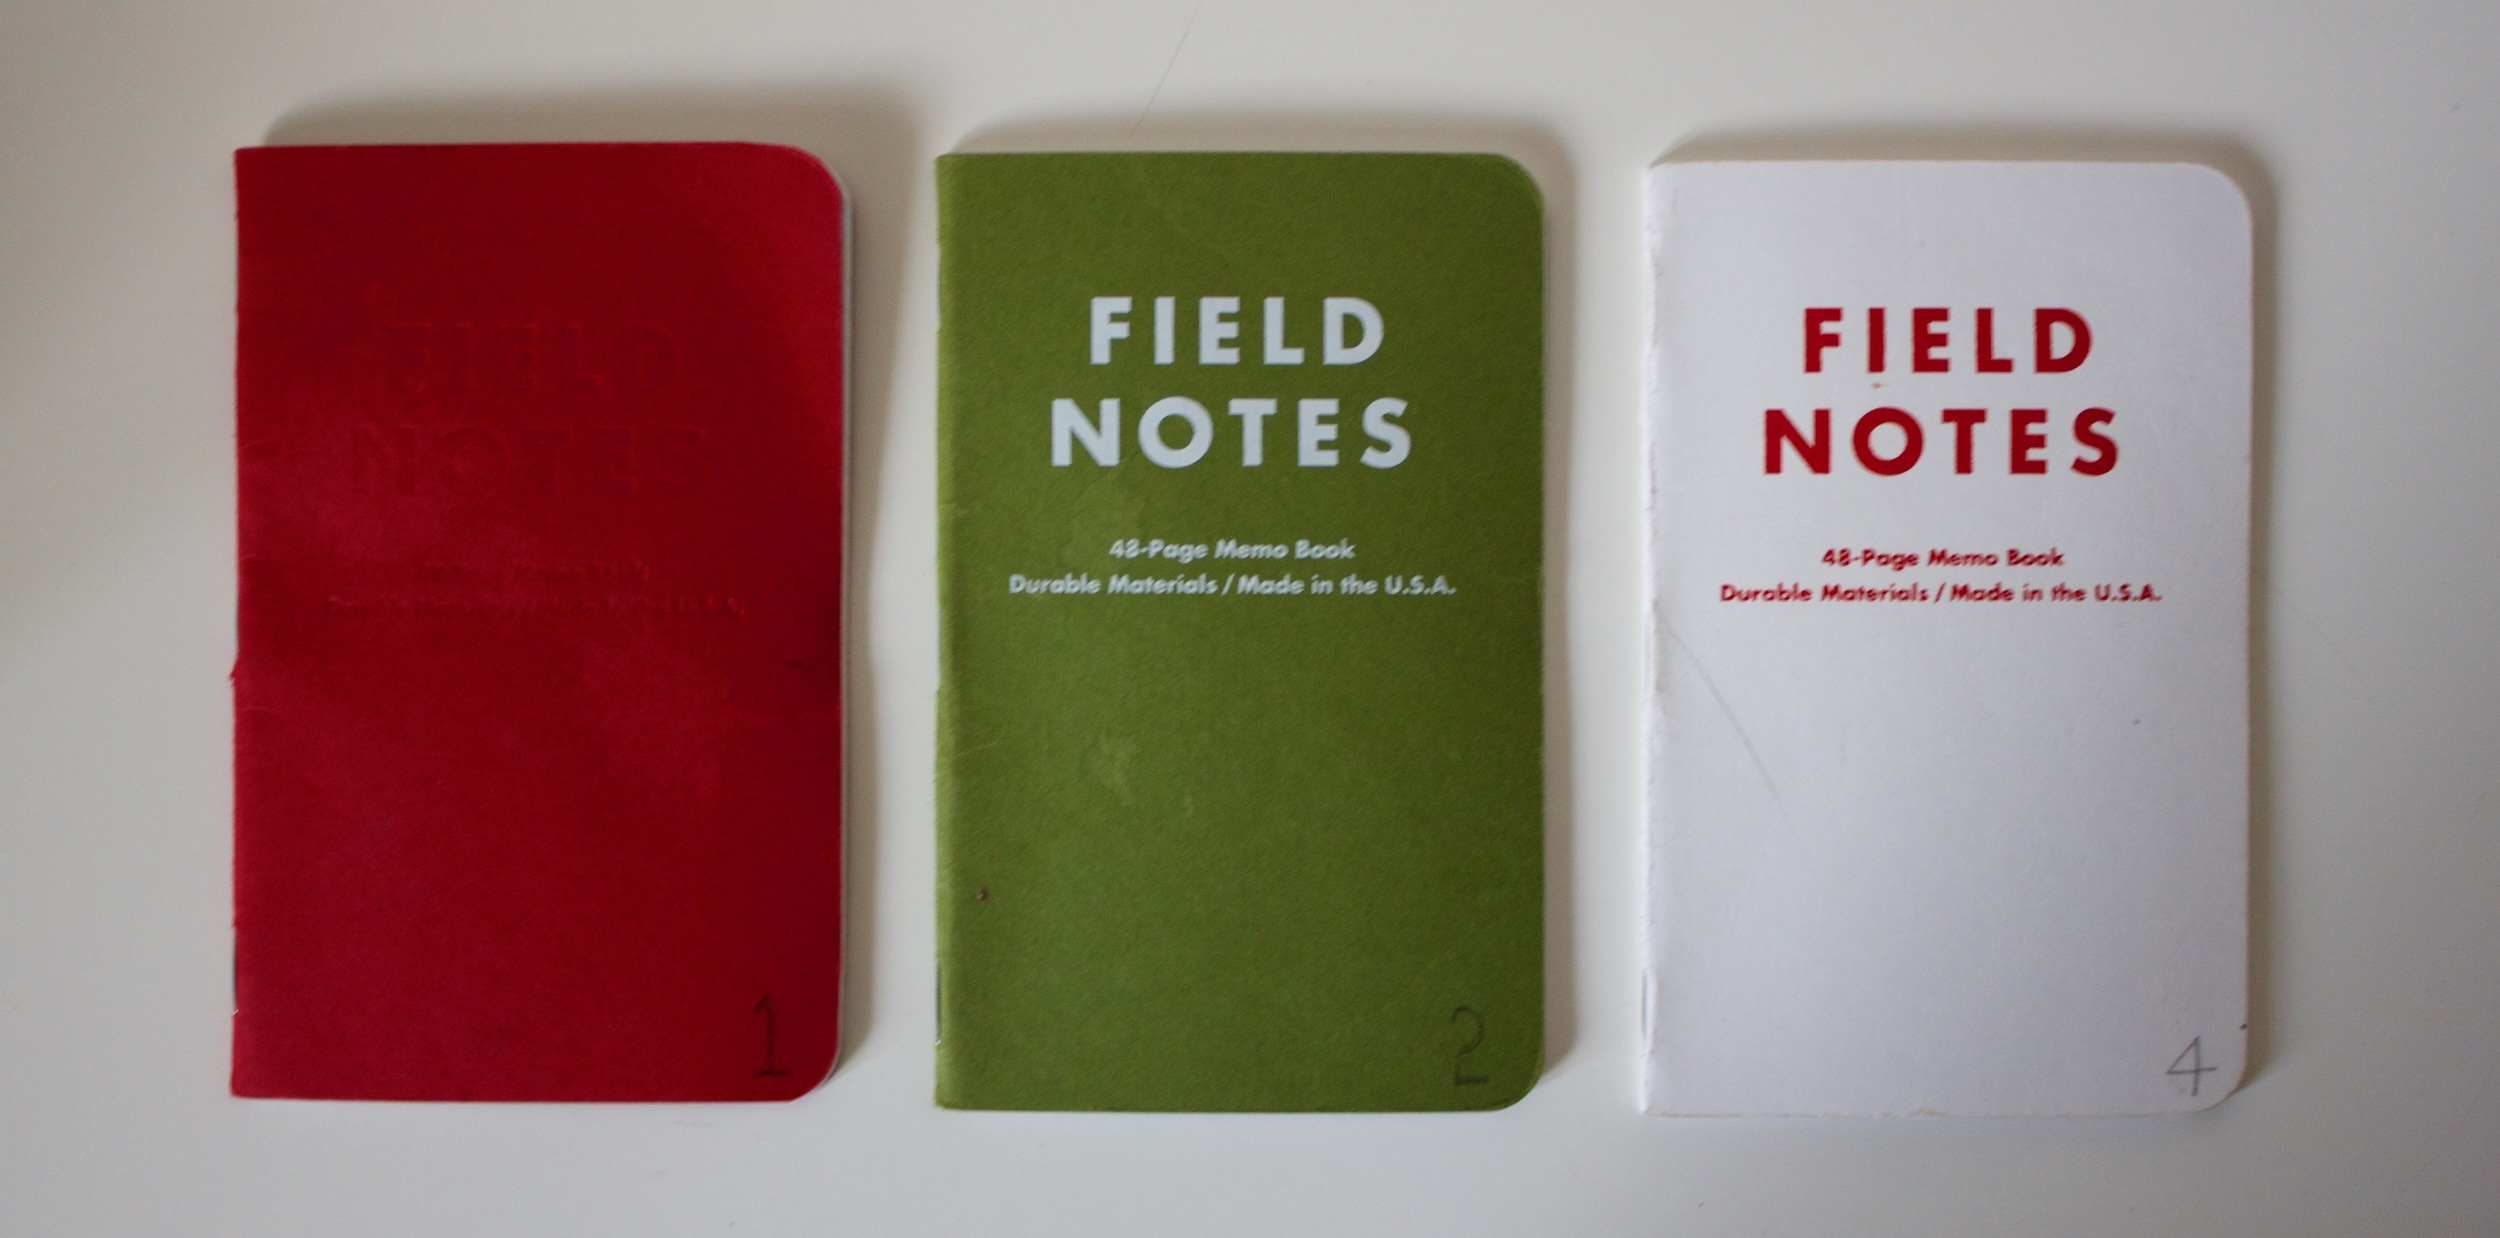 My first 3 completed notebooks